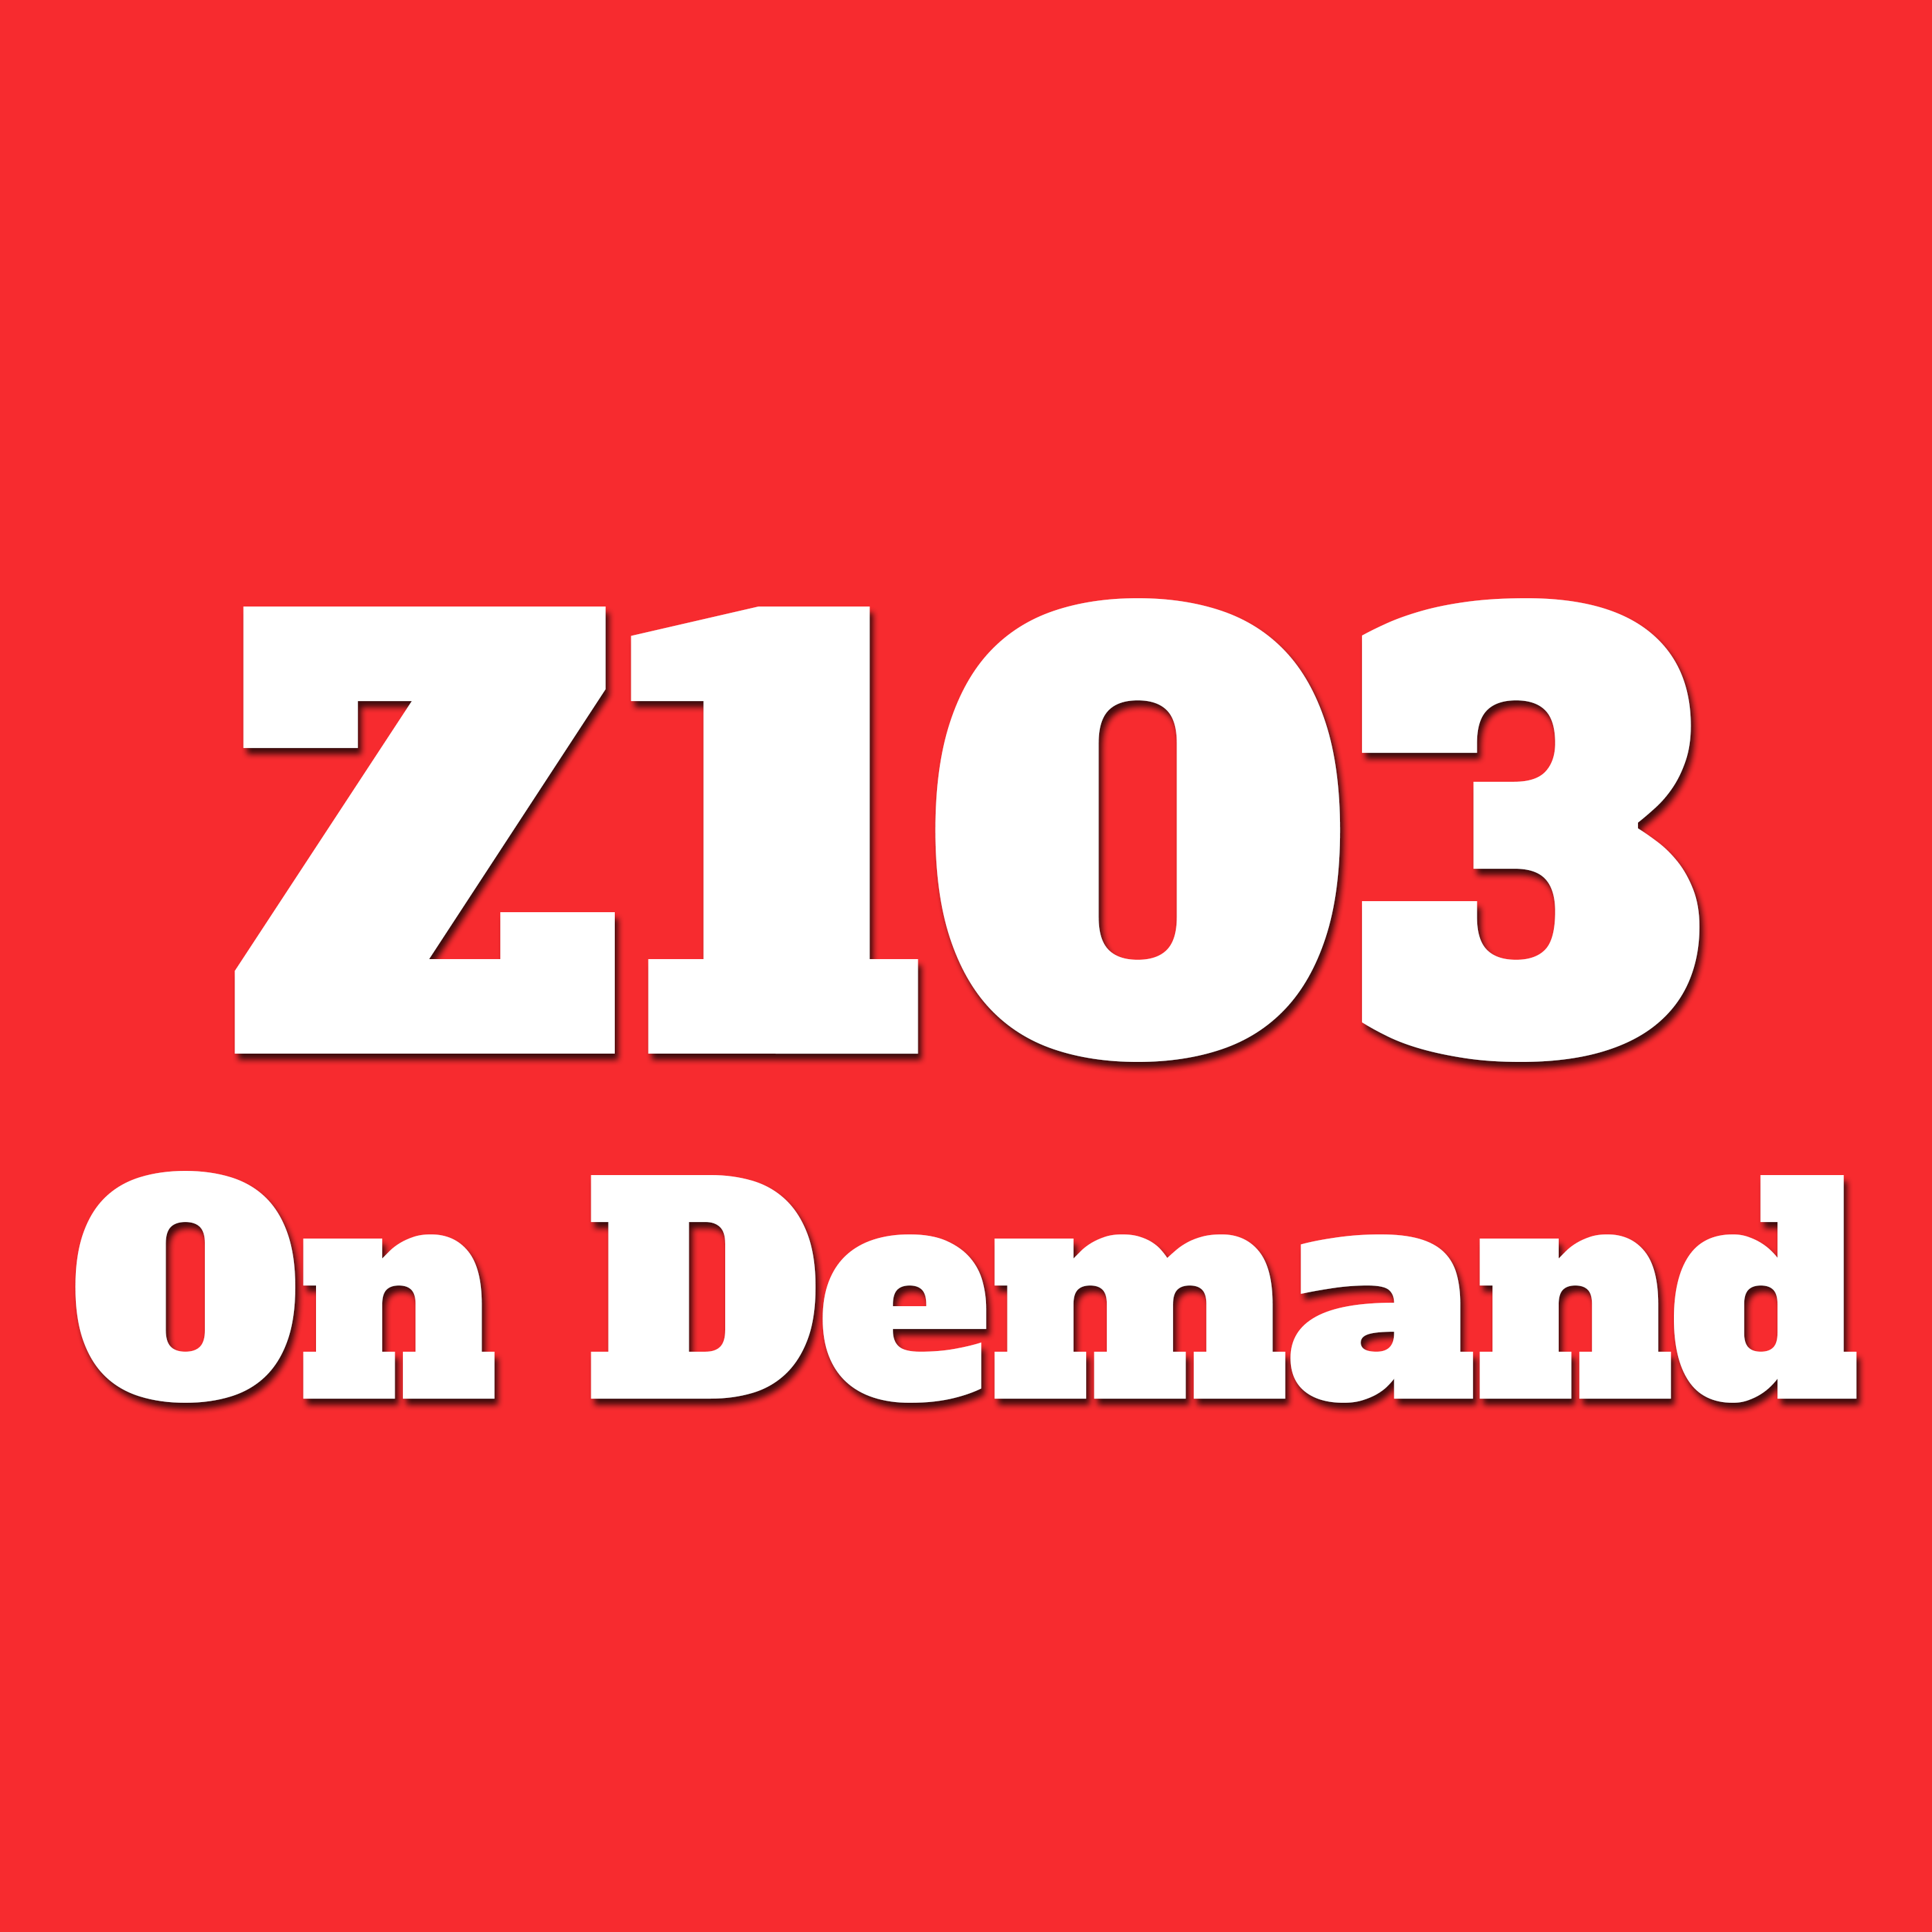 Z103 On Demand